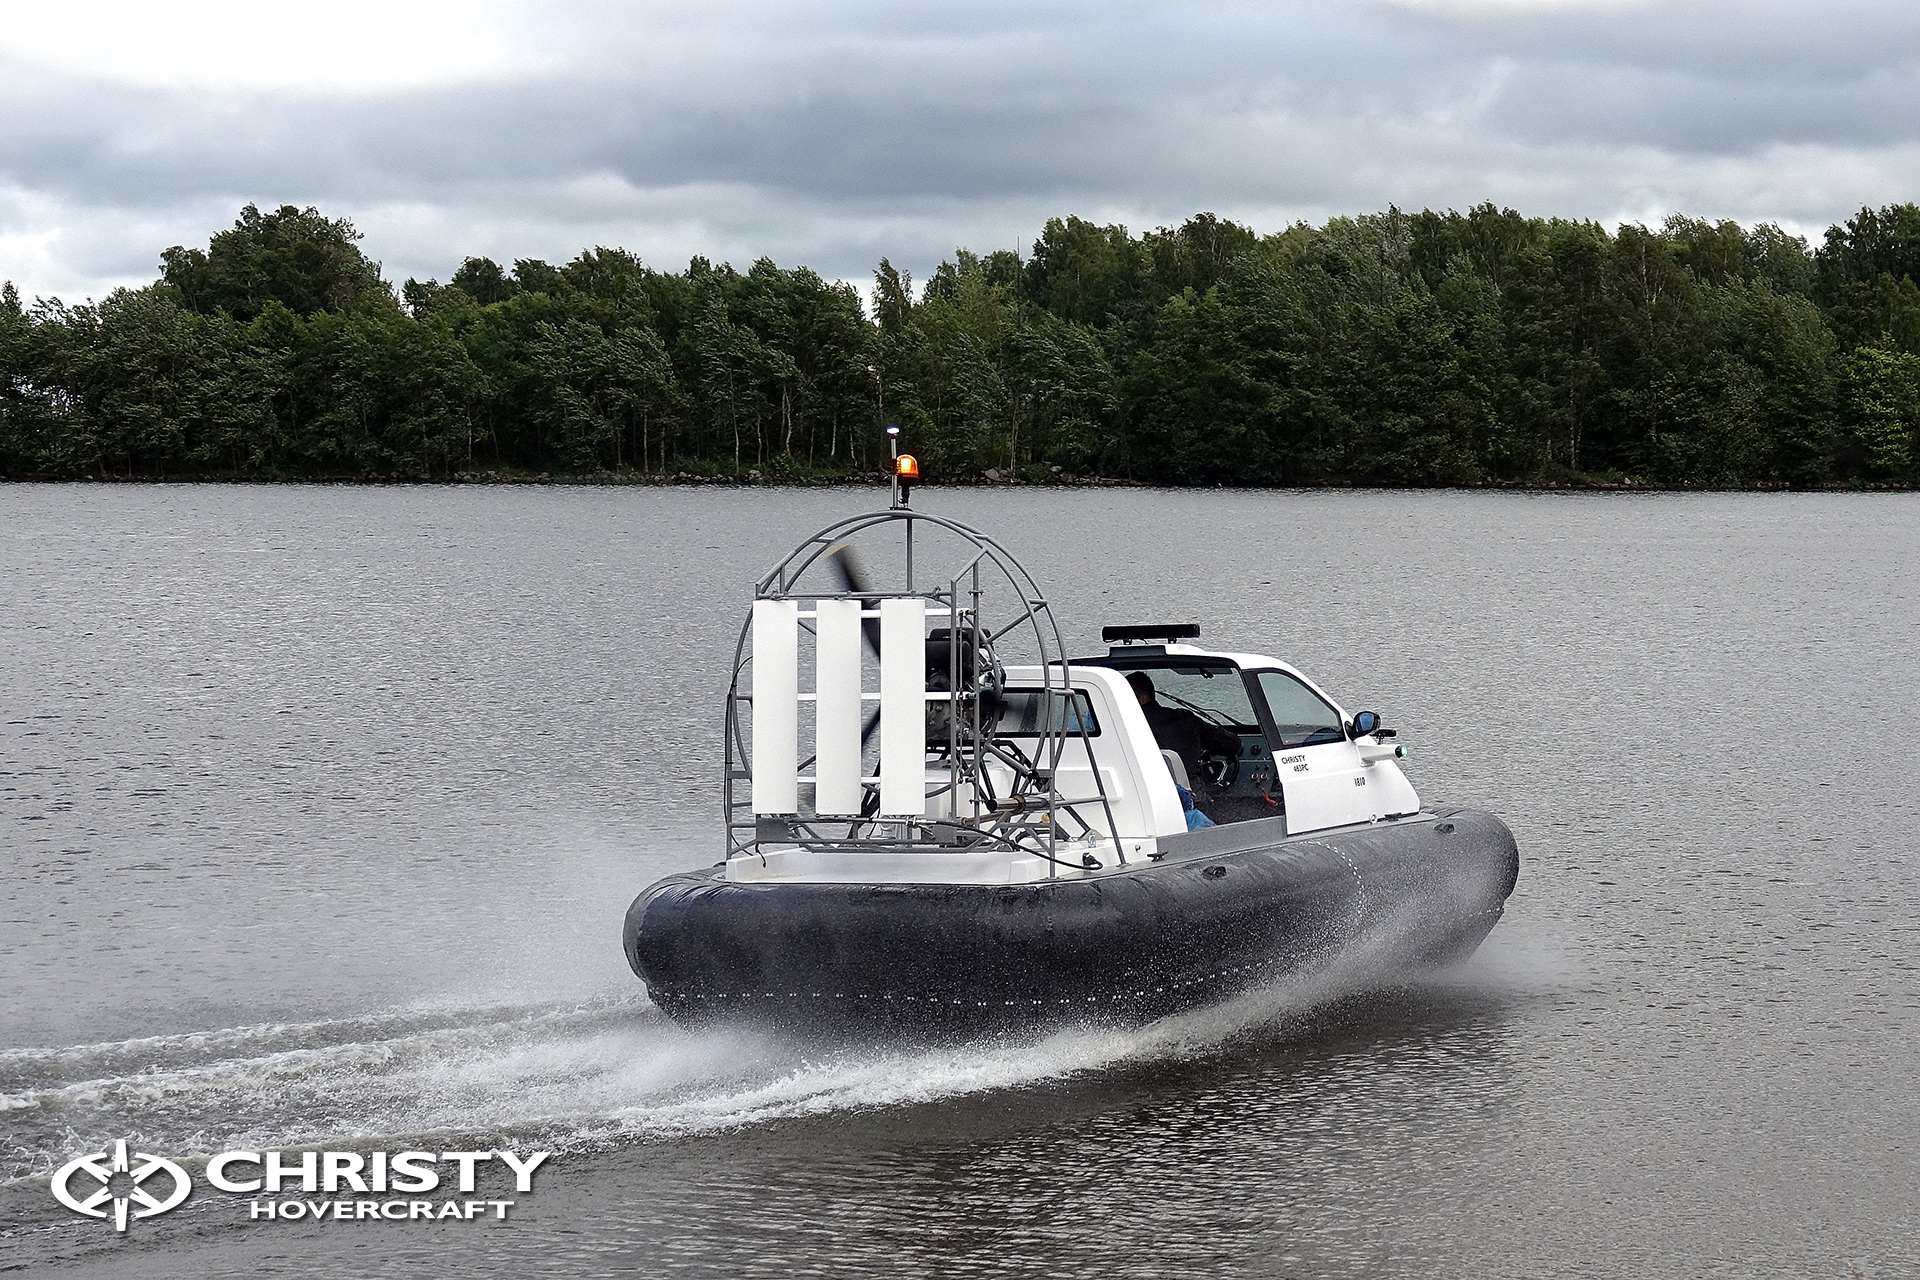 Hovercraft Christy 463 PC in Storm 290618 19.jpg | фото №18